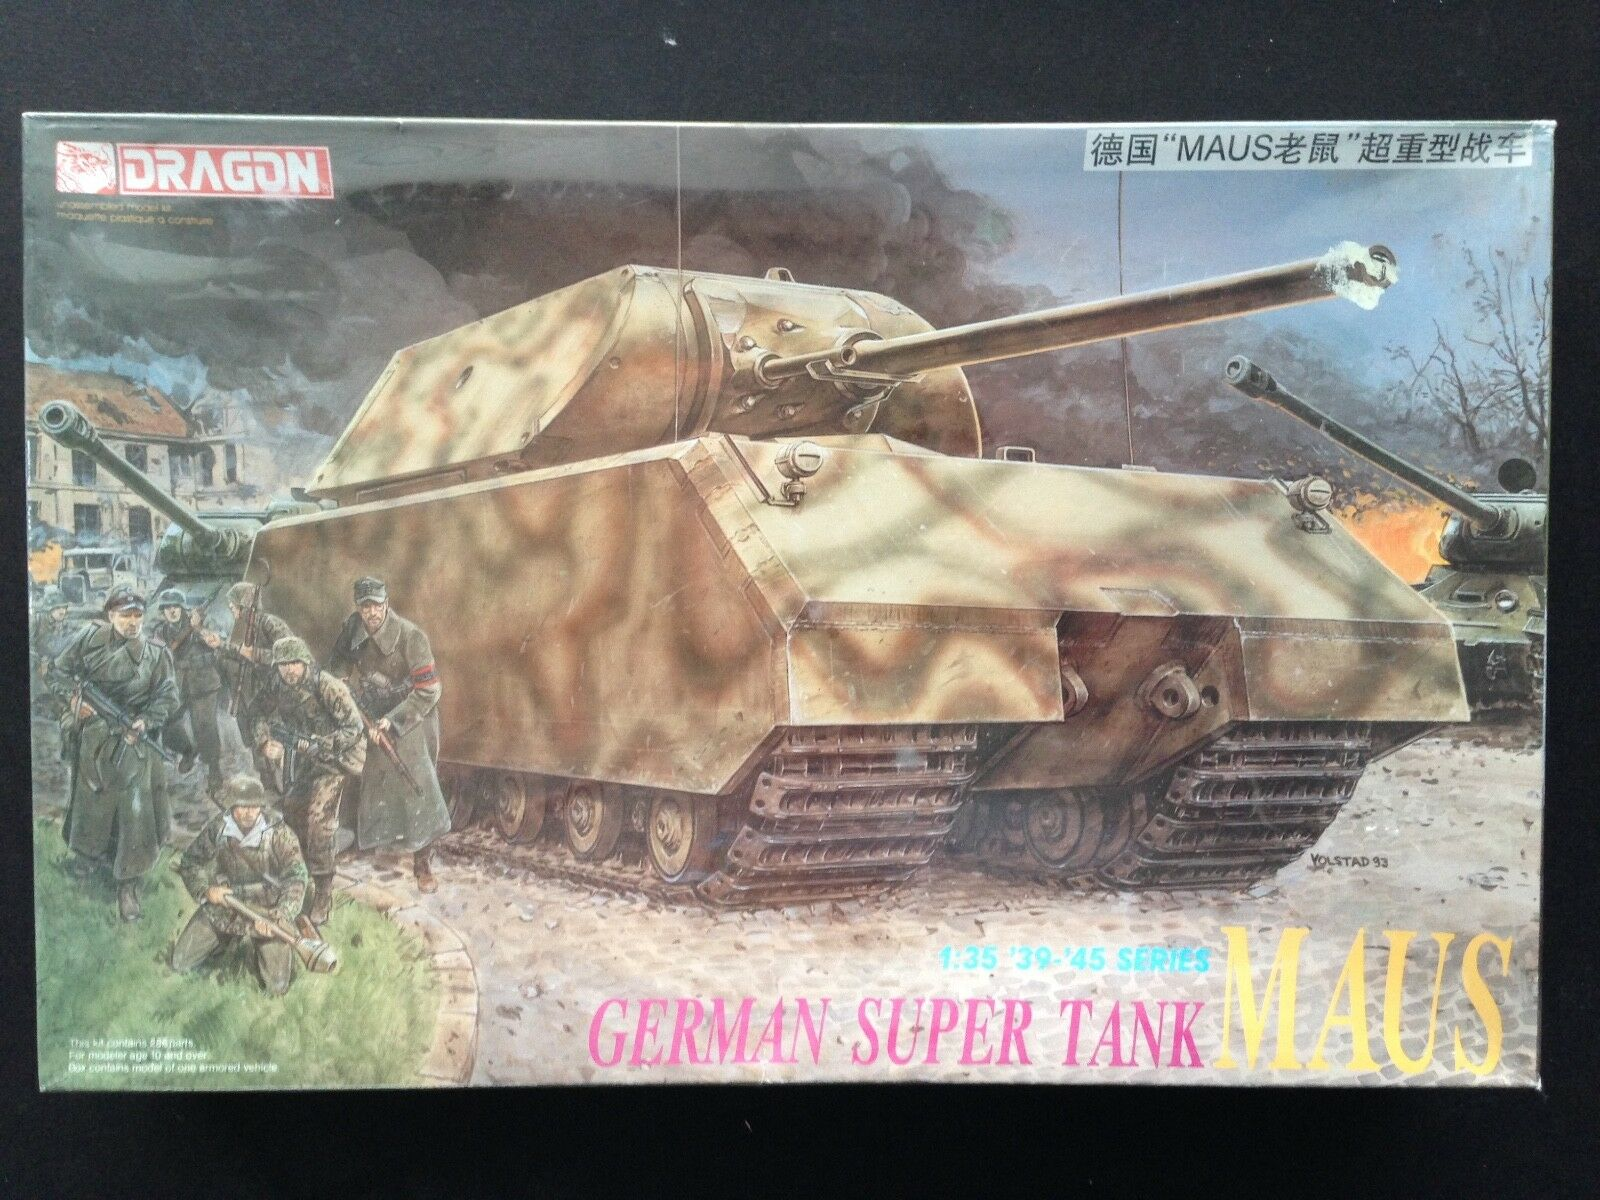 Dragon DML MAUS 1 35 kit German Super Tank; free Aust. P&H.